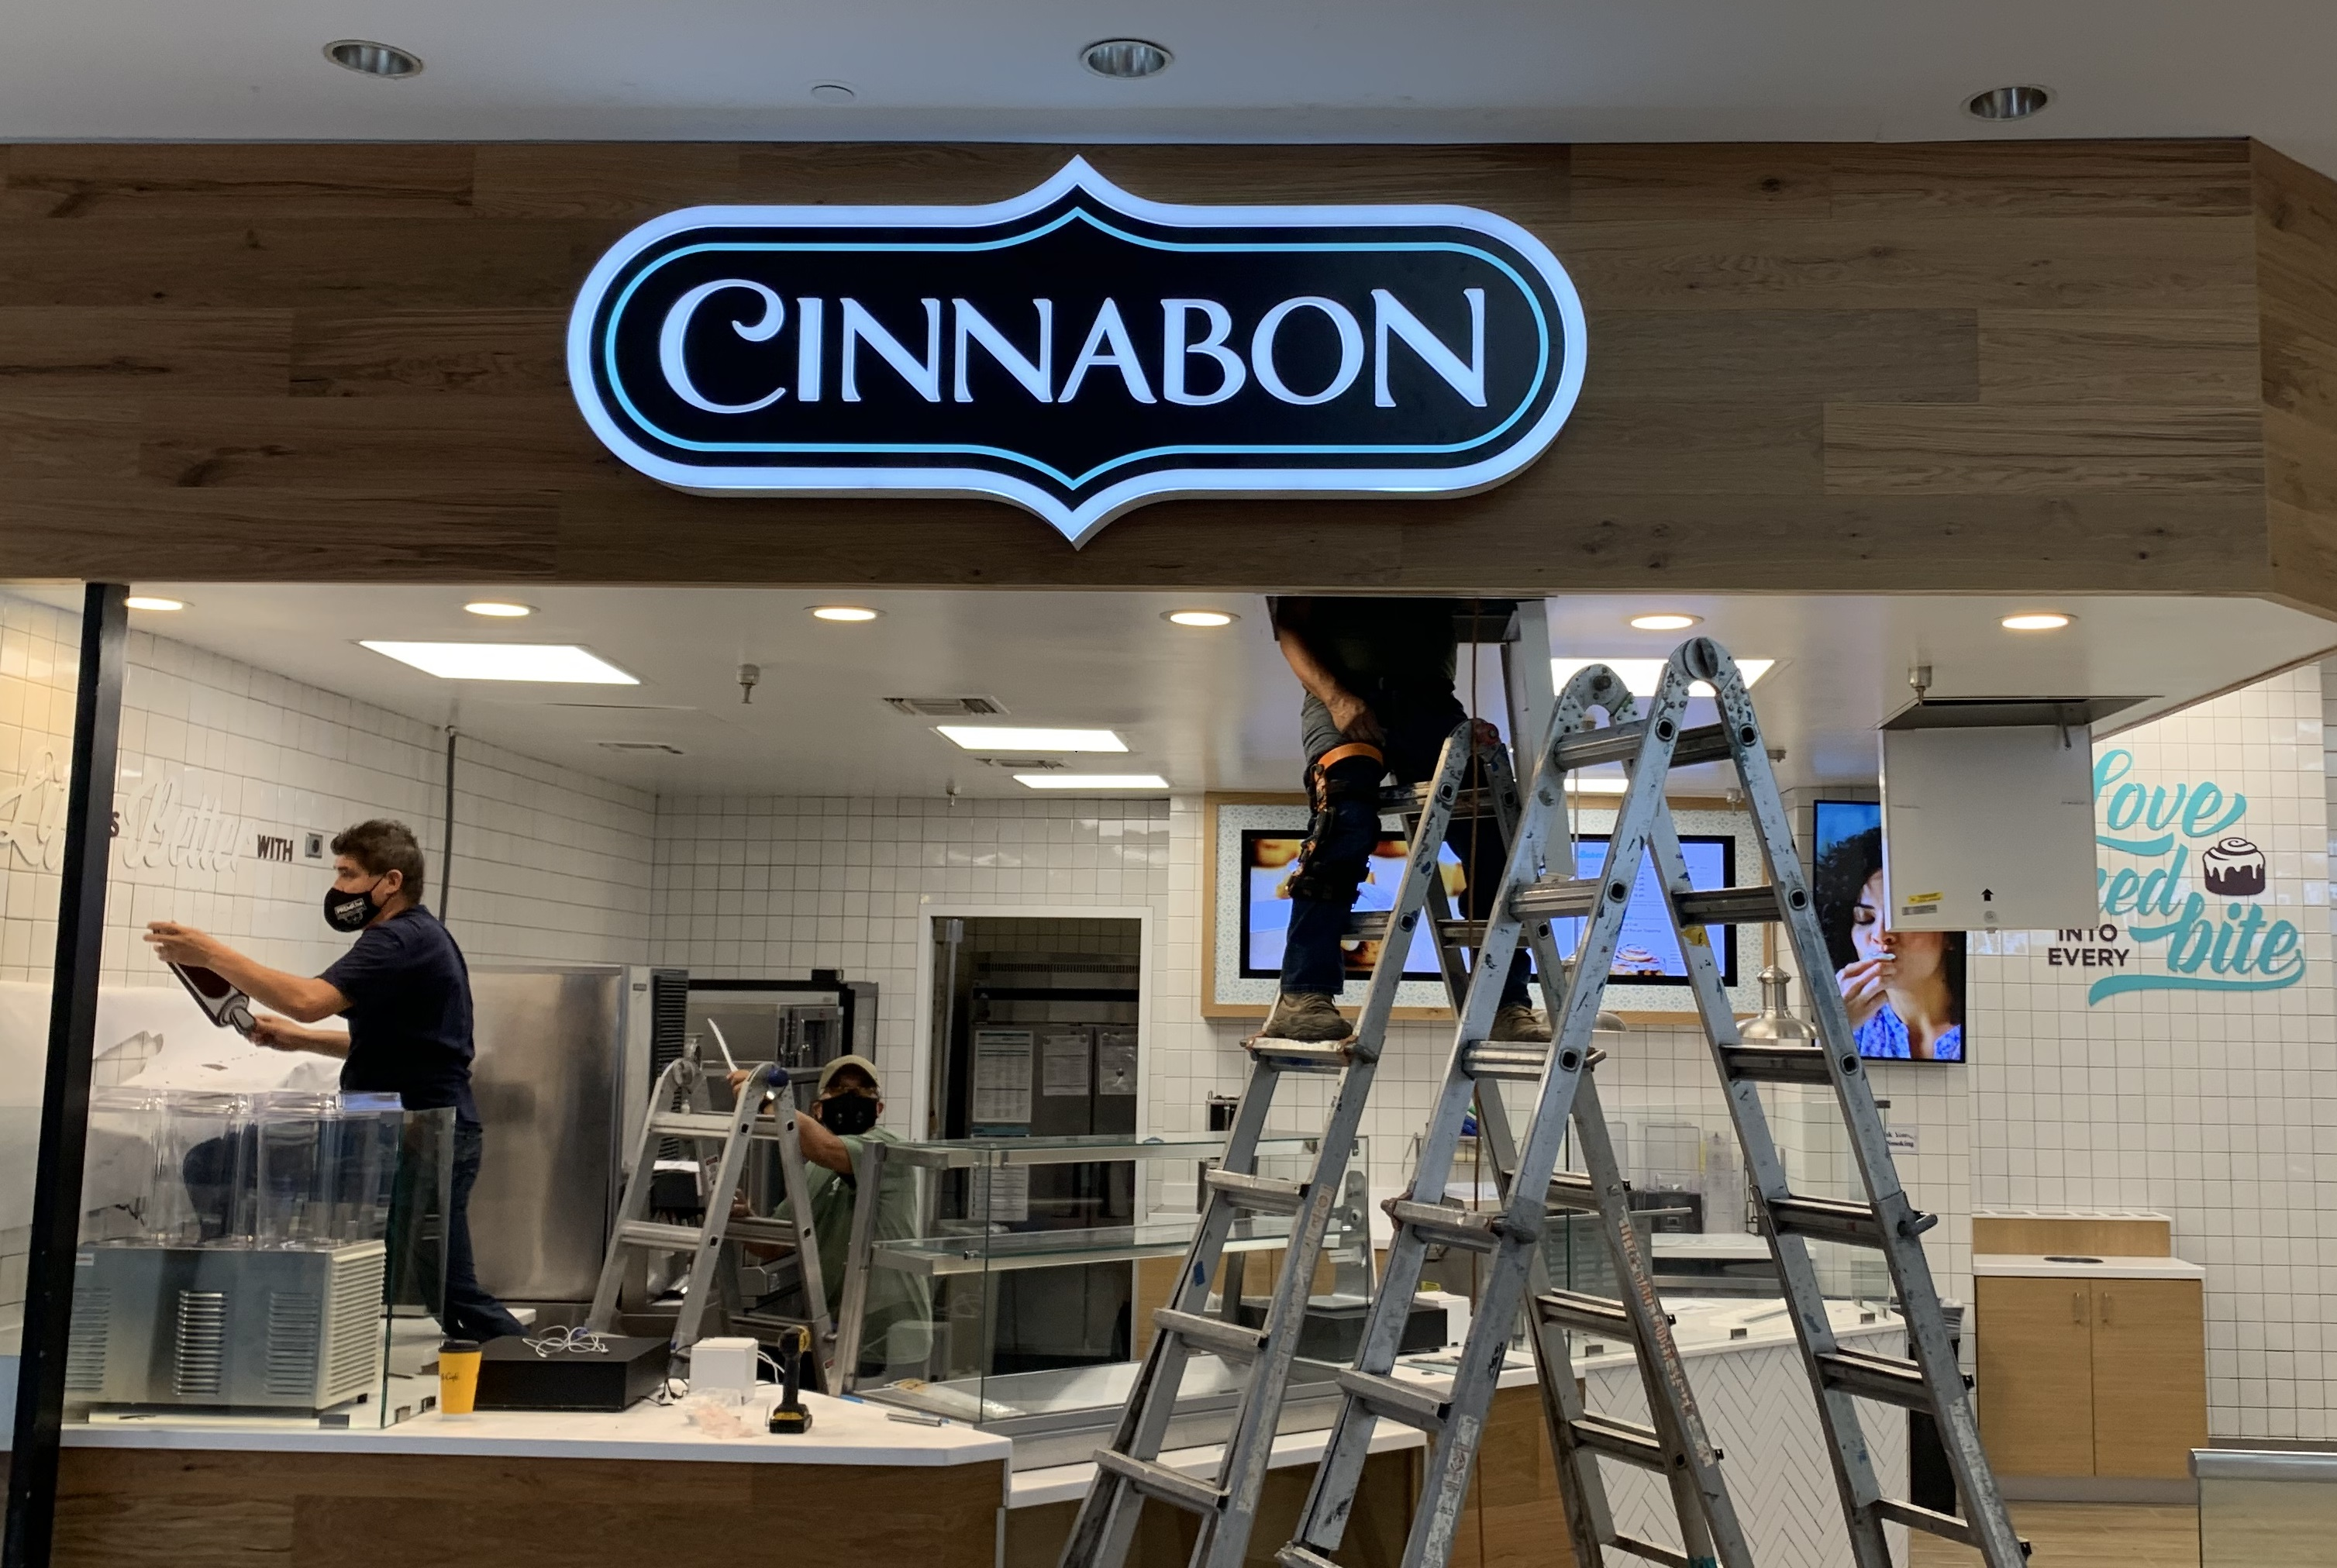 Part of a business sign package for Cinnabon in Del Amo Mall in Torrance in partnership with TubeArt. It includes 2 sets for channel letters.